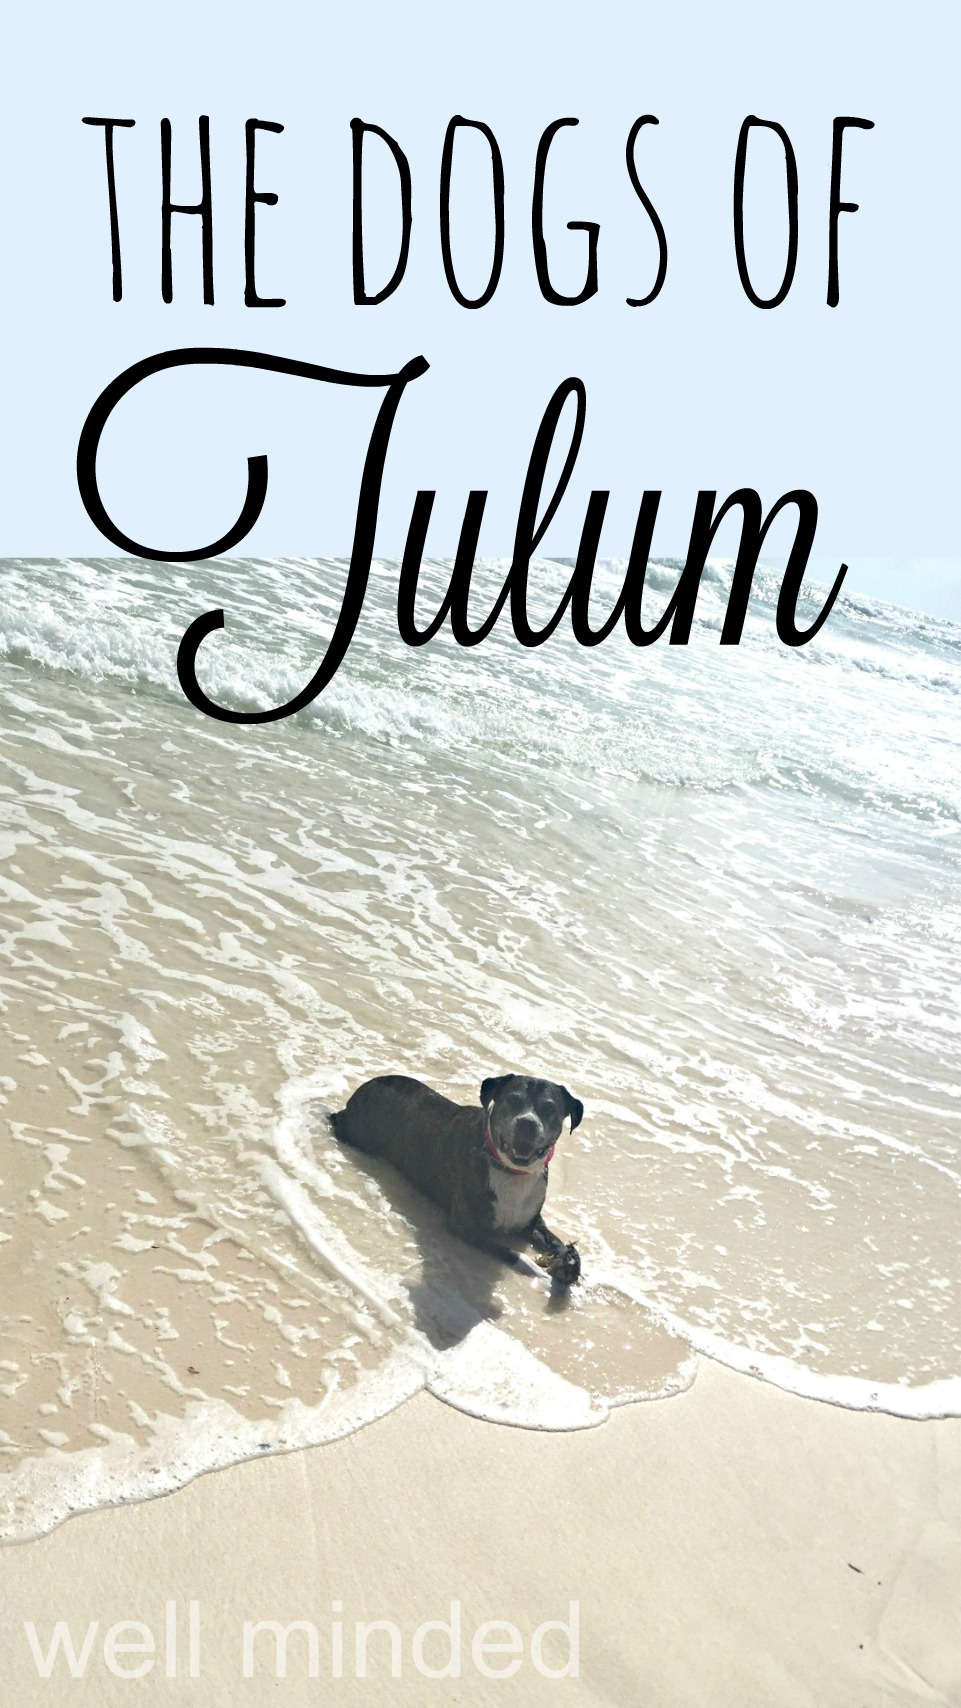 The Dogs of Tulum–Well Minded